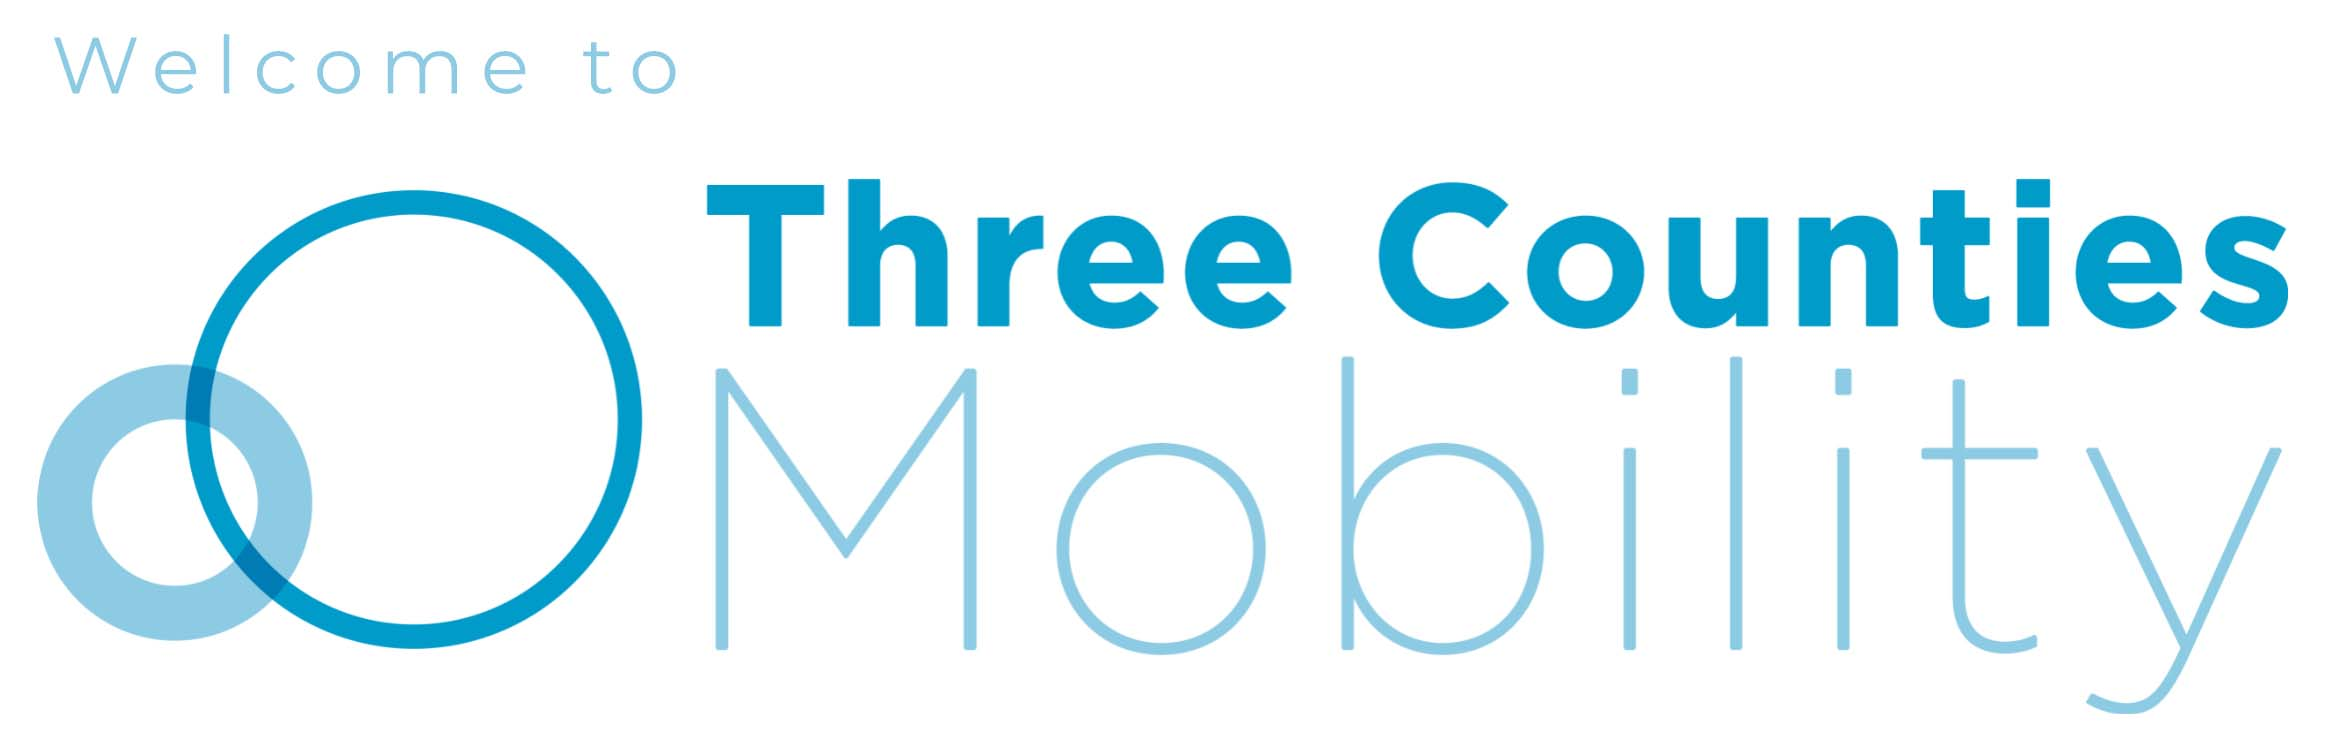 Three Counties Mobility